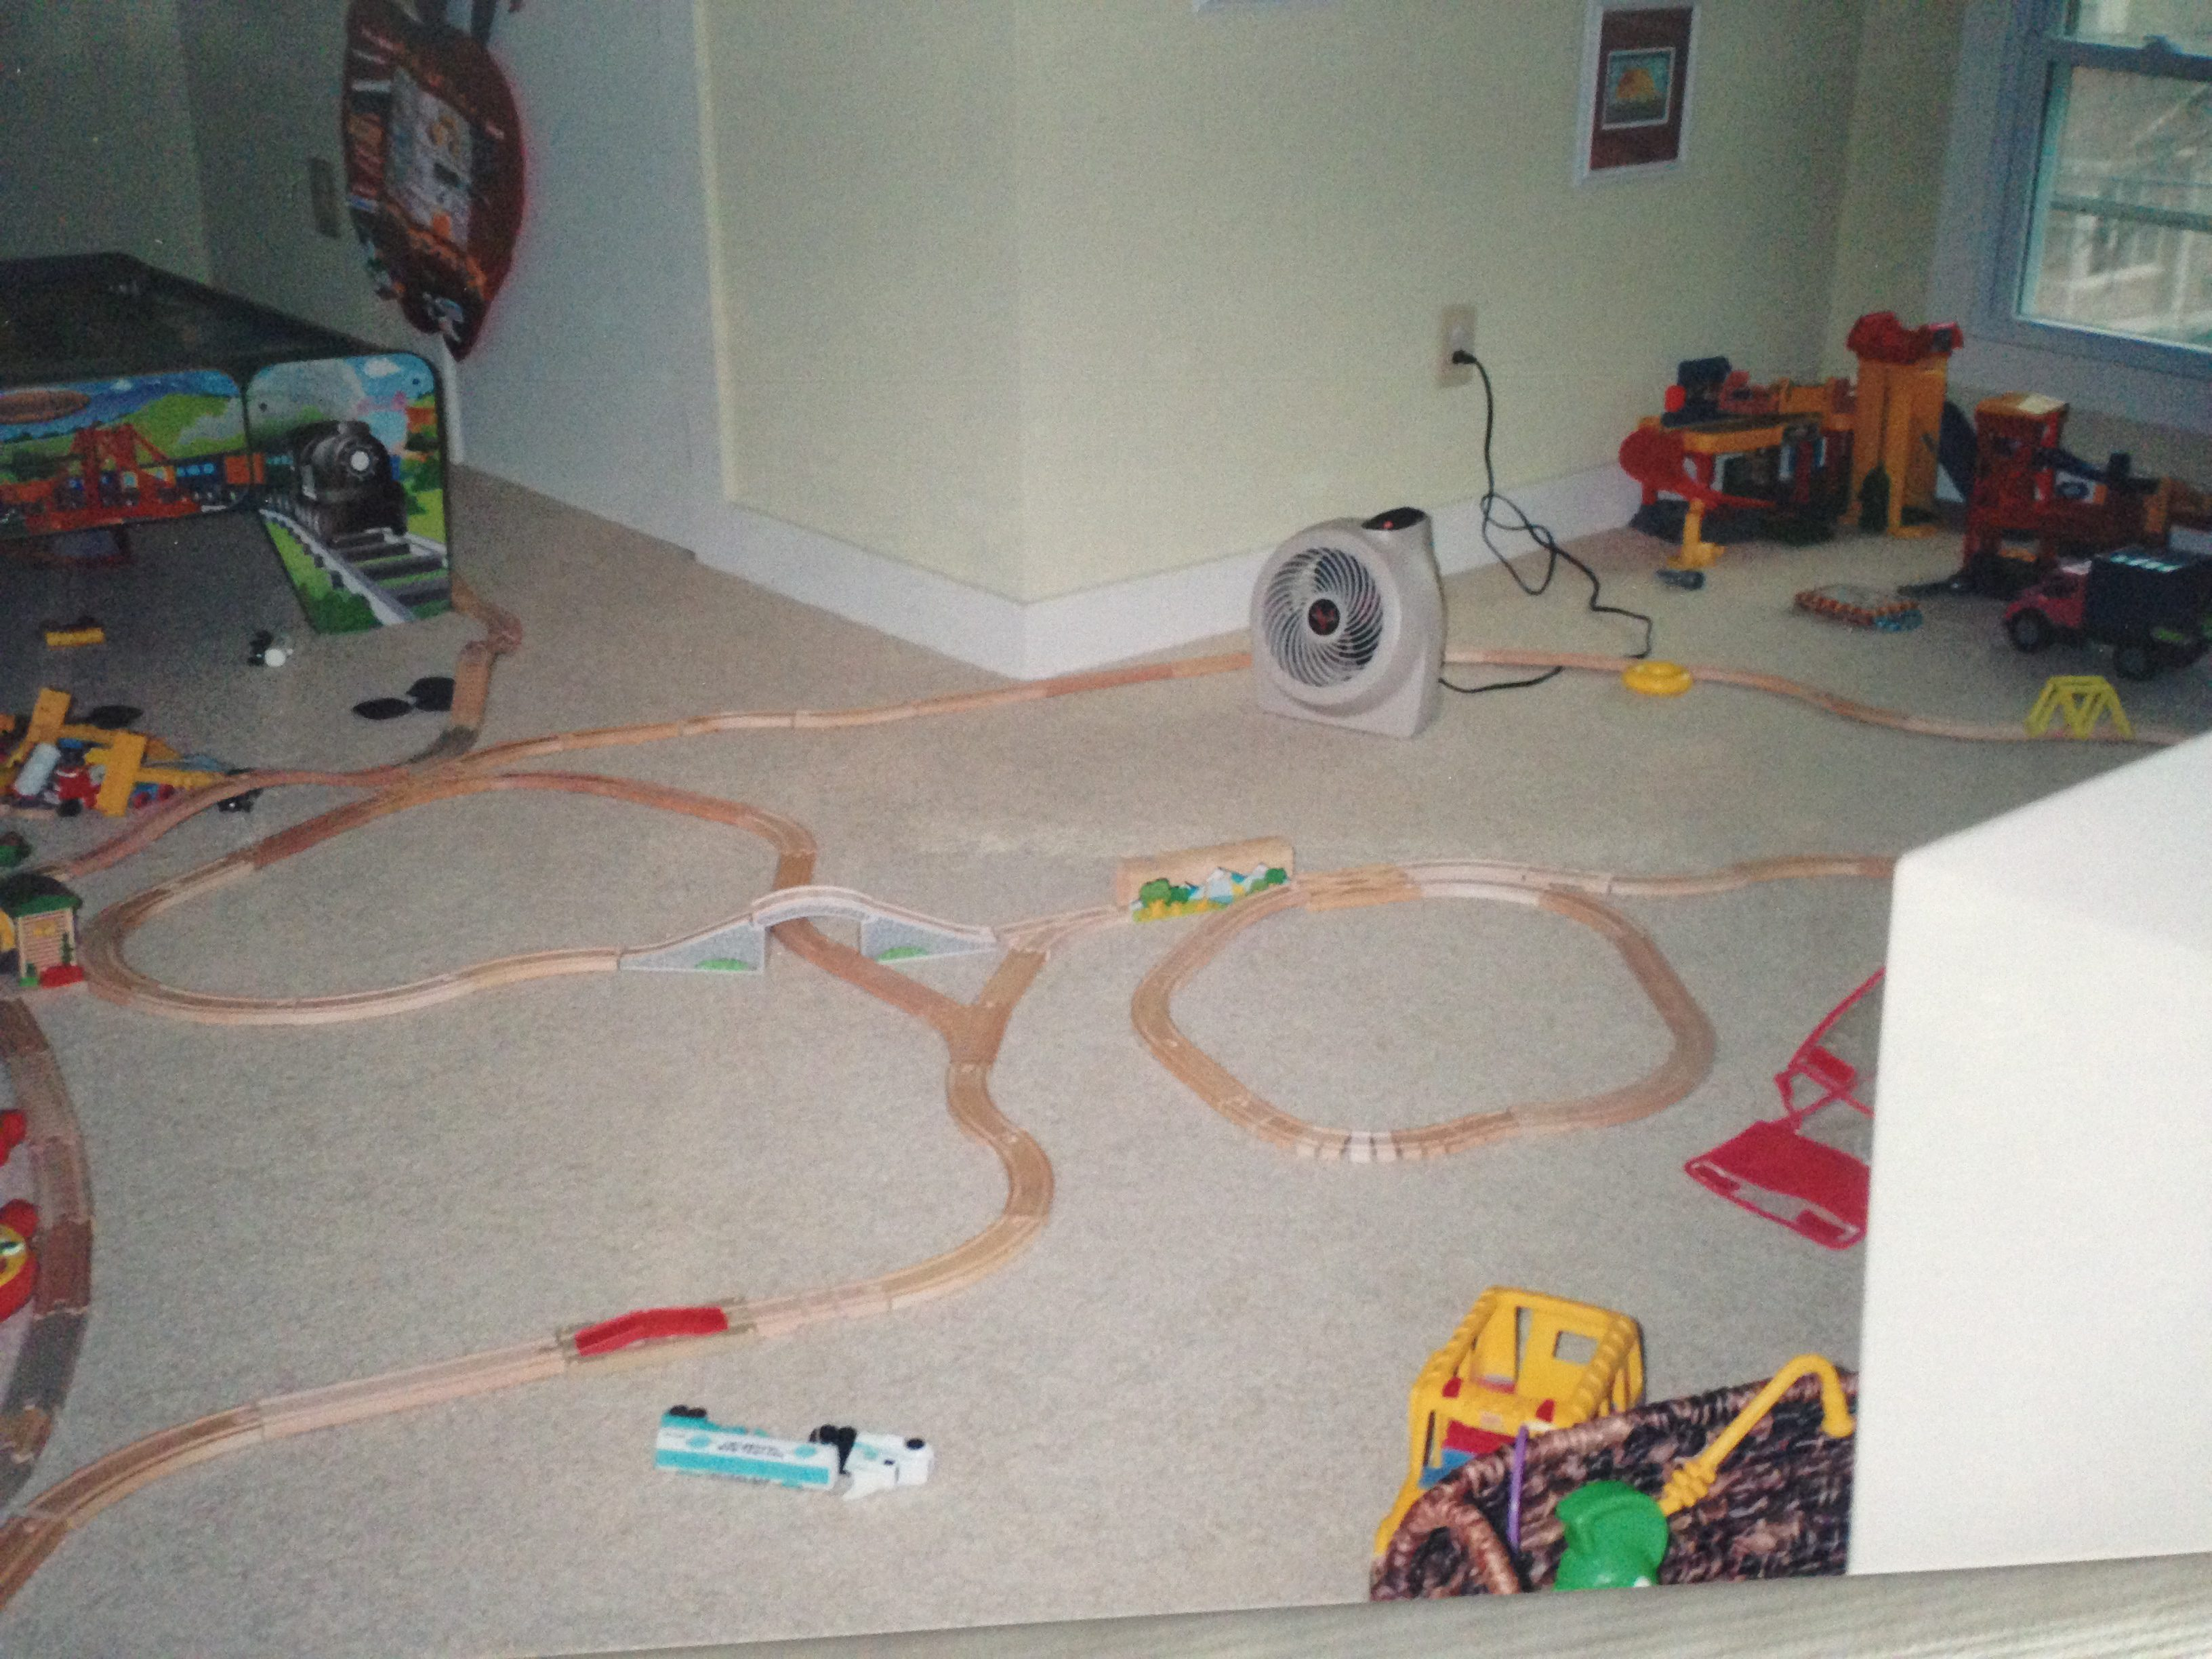 Tired of tripping on toy train tracks? Banish them to the attic.